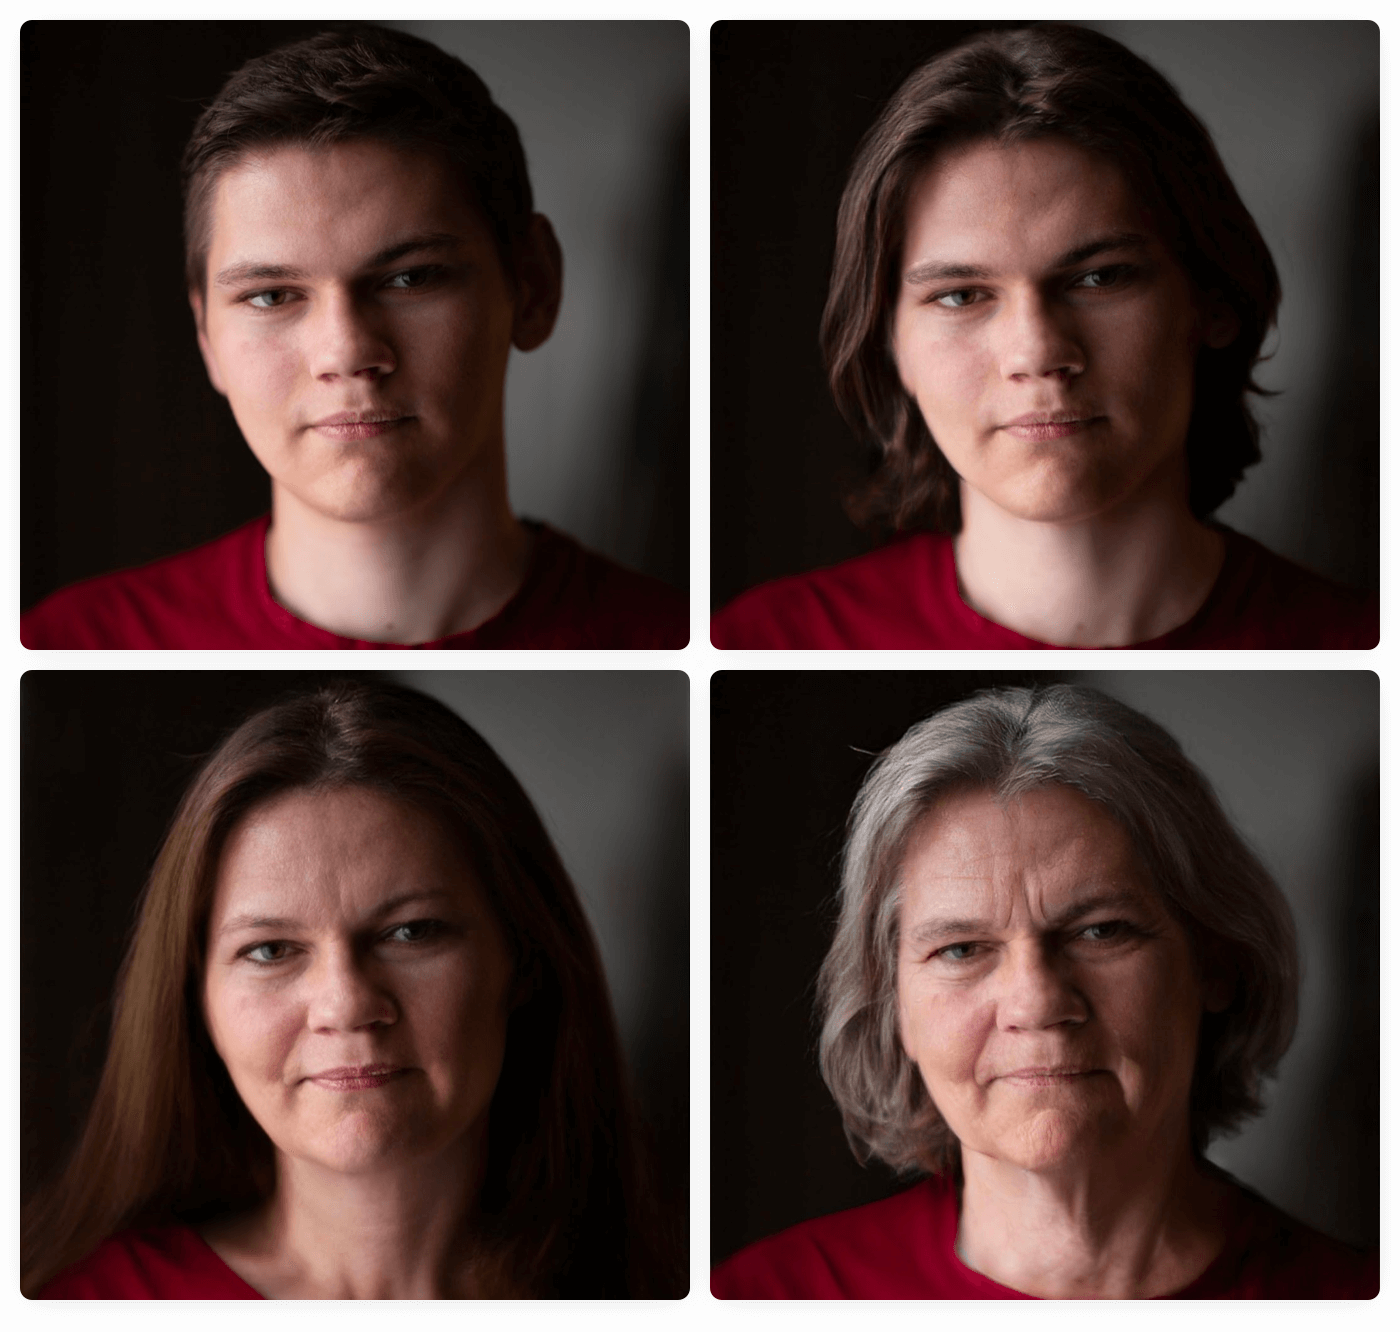 Some photos manipulated with FaceApp